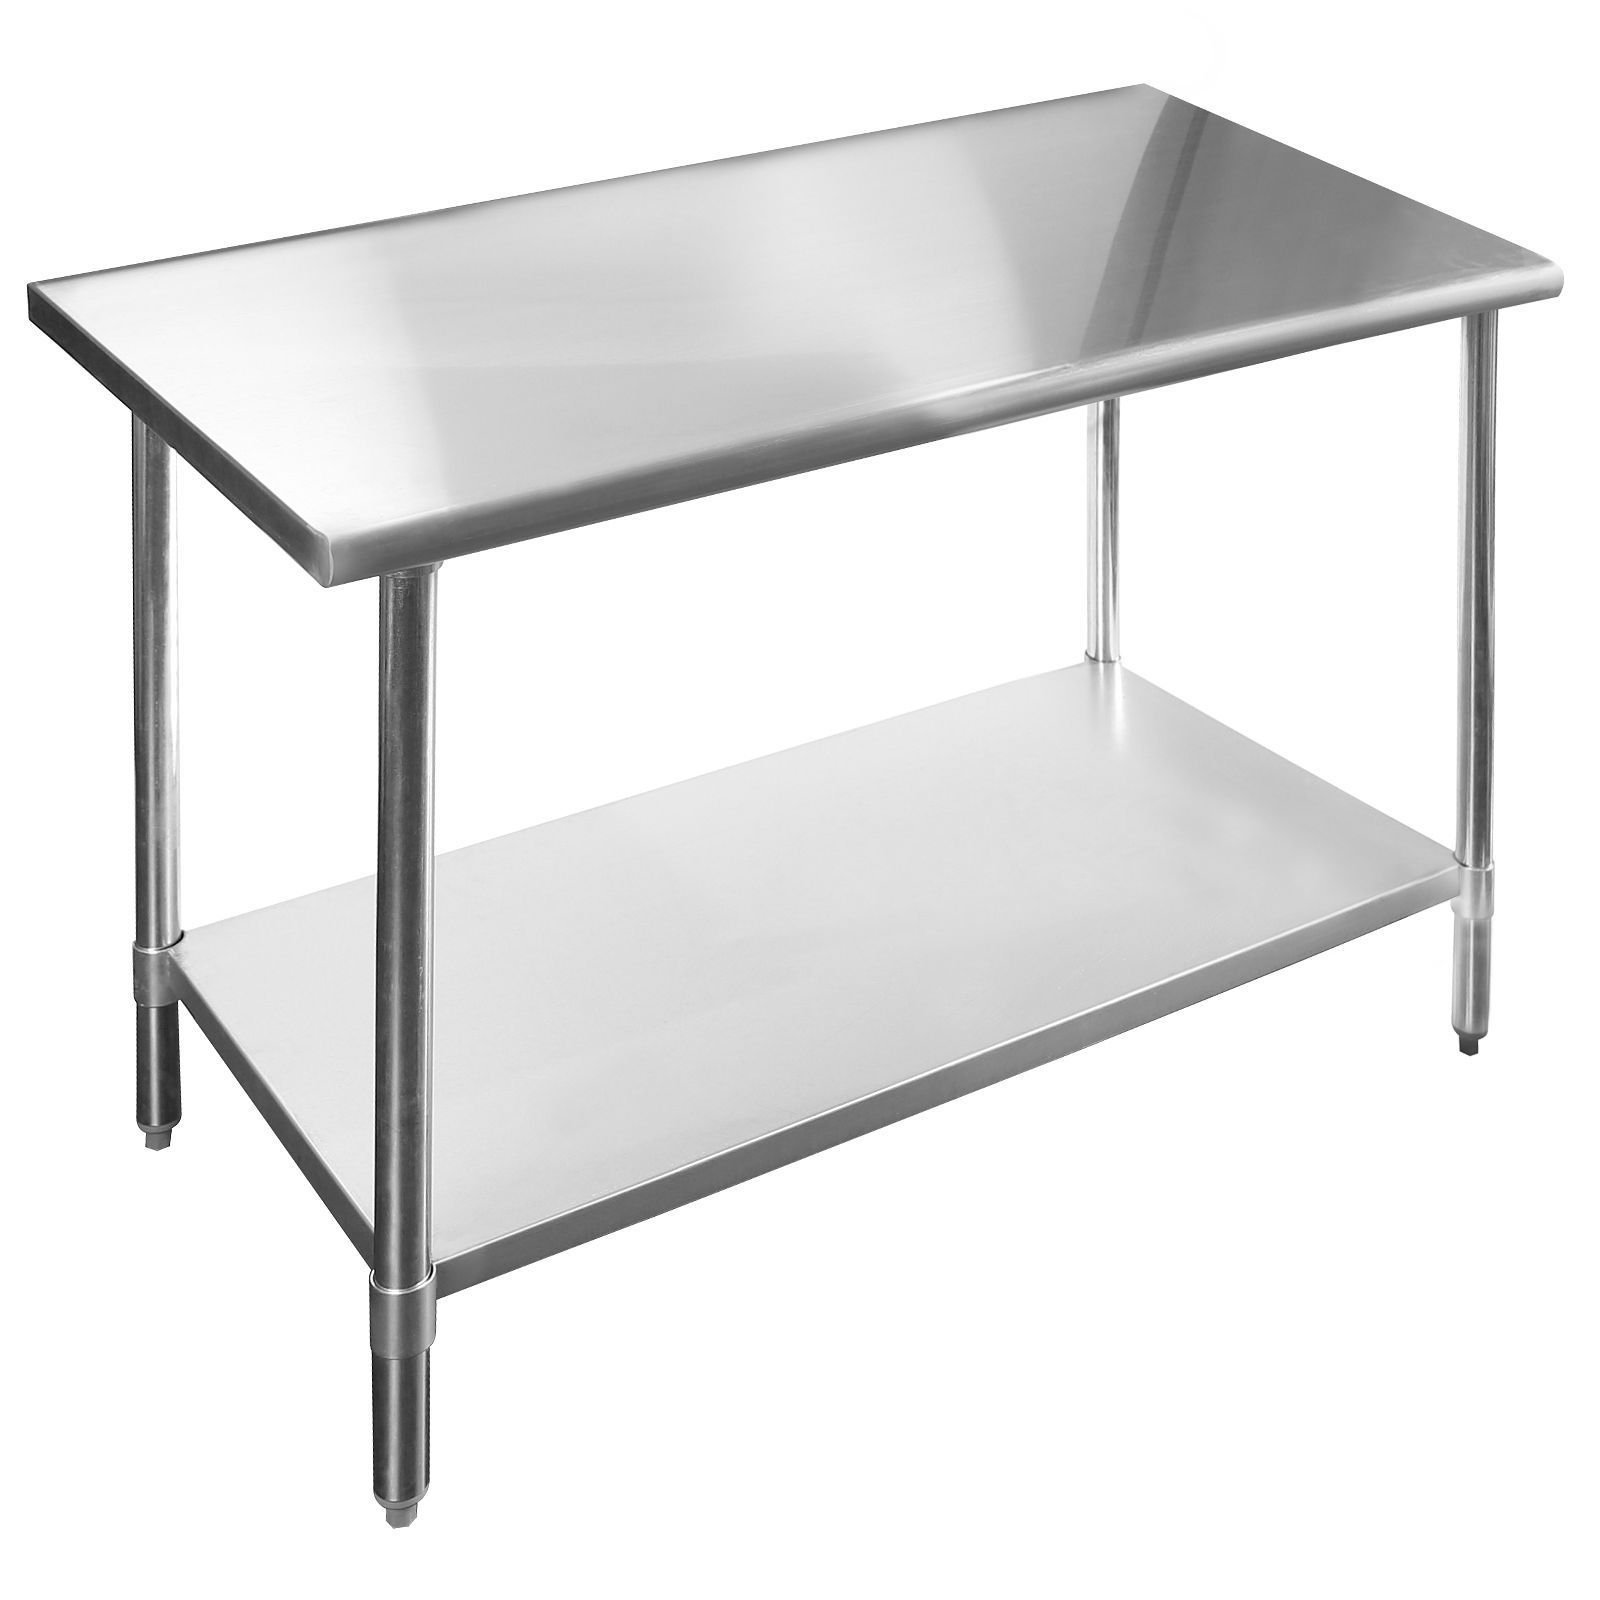 KPS Commercial Stainless Steel Work Prep Table 24 x 12 - NSF